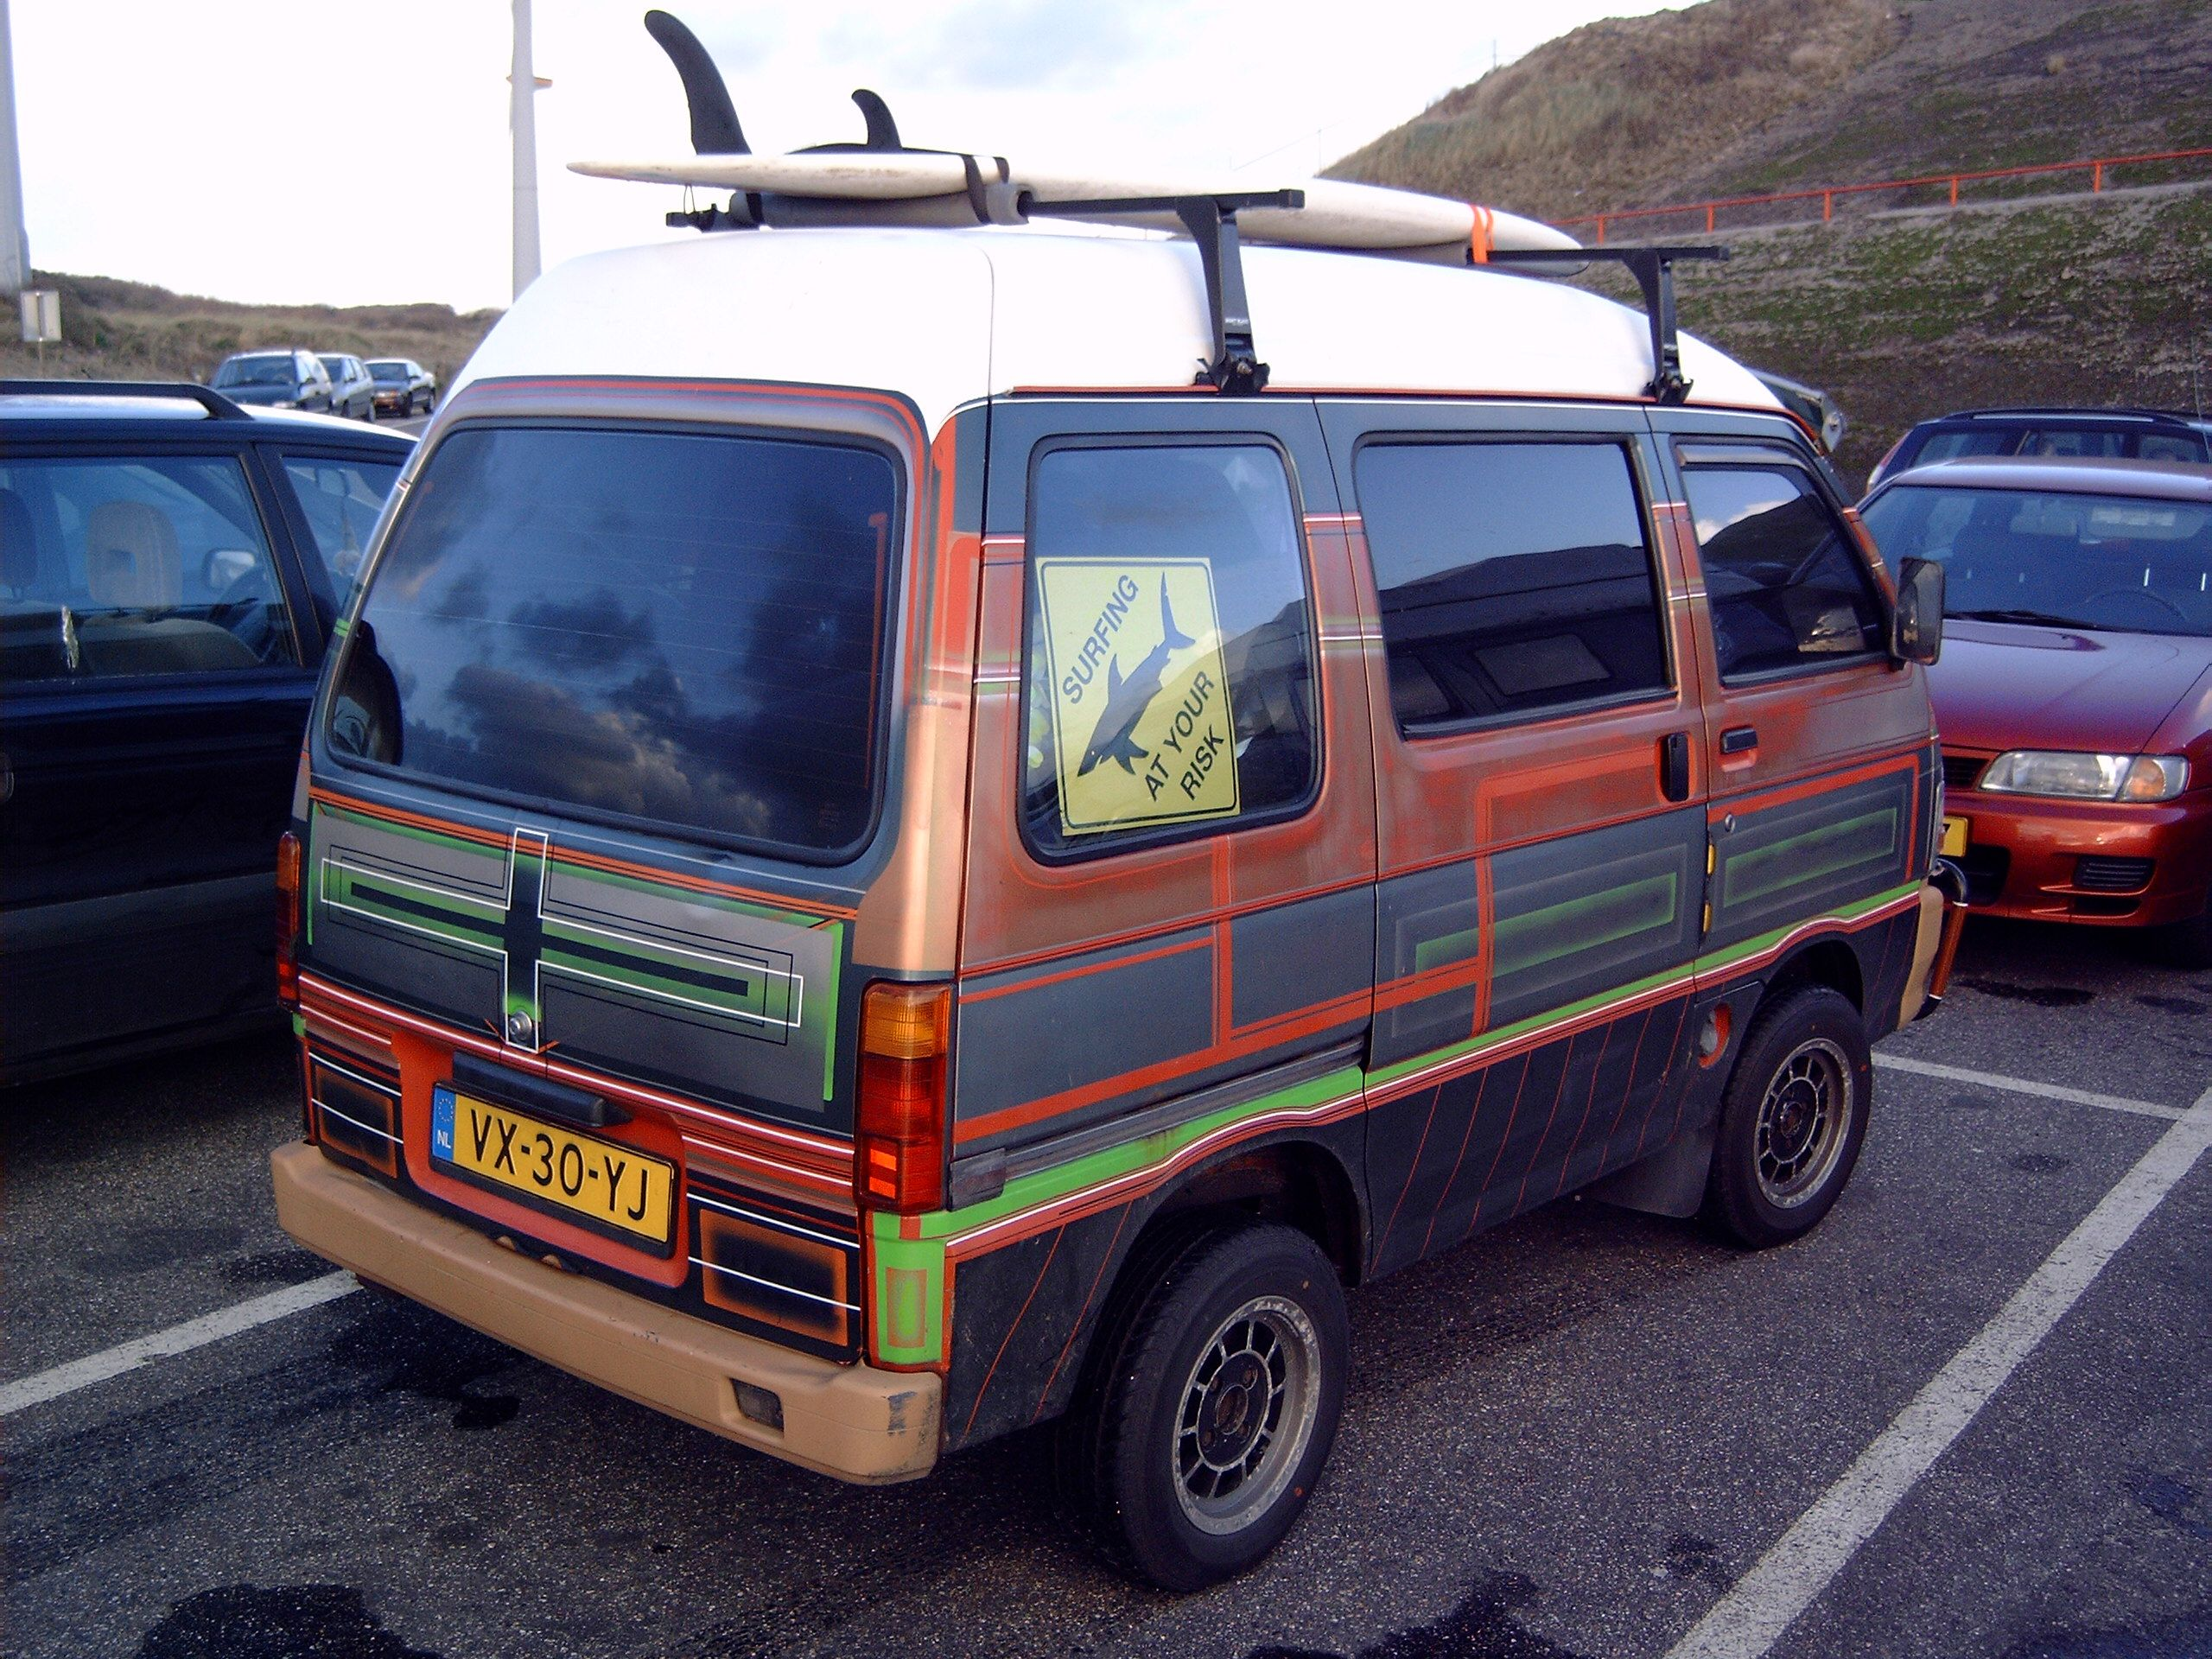 Custom Daihatsu Hijet Minitruck Kei Car With Images Kei Car